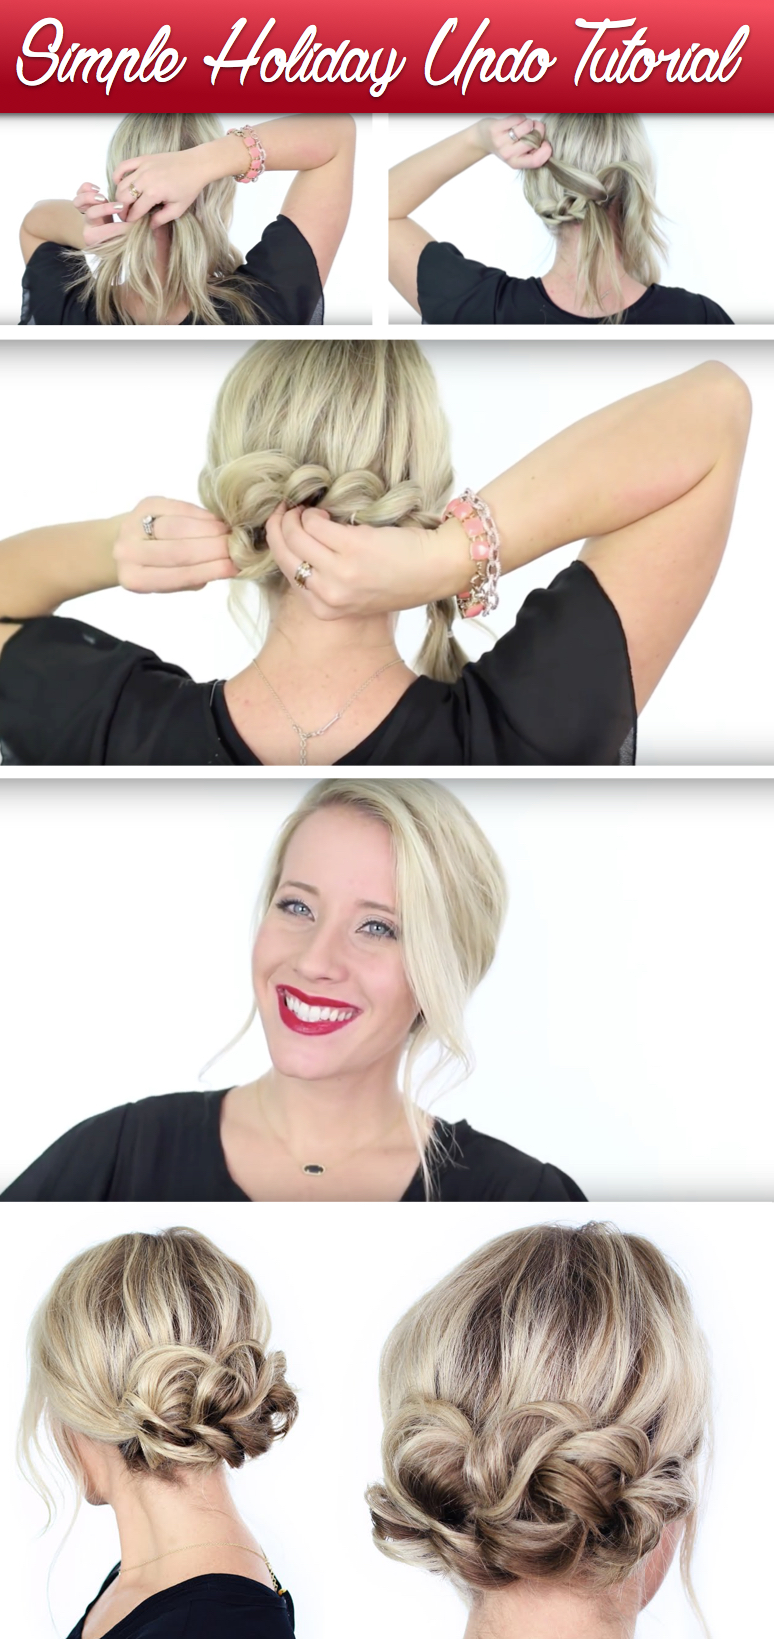 simple holiday updo tutorial